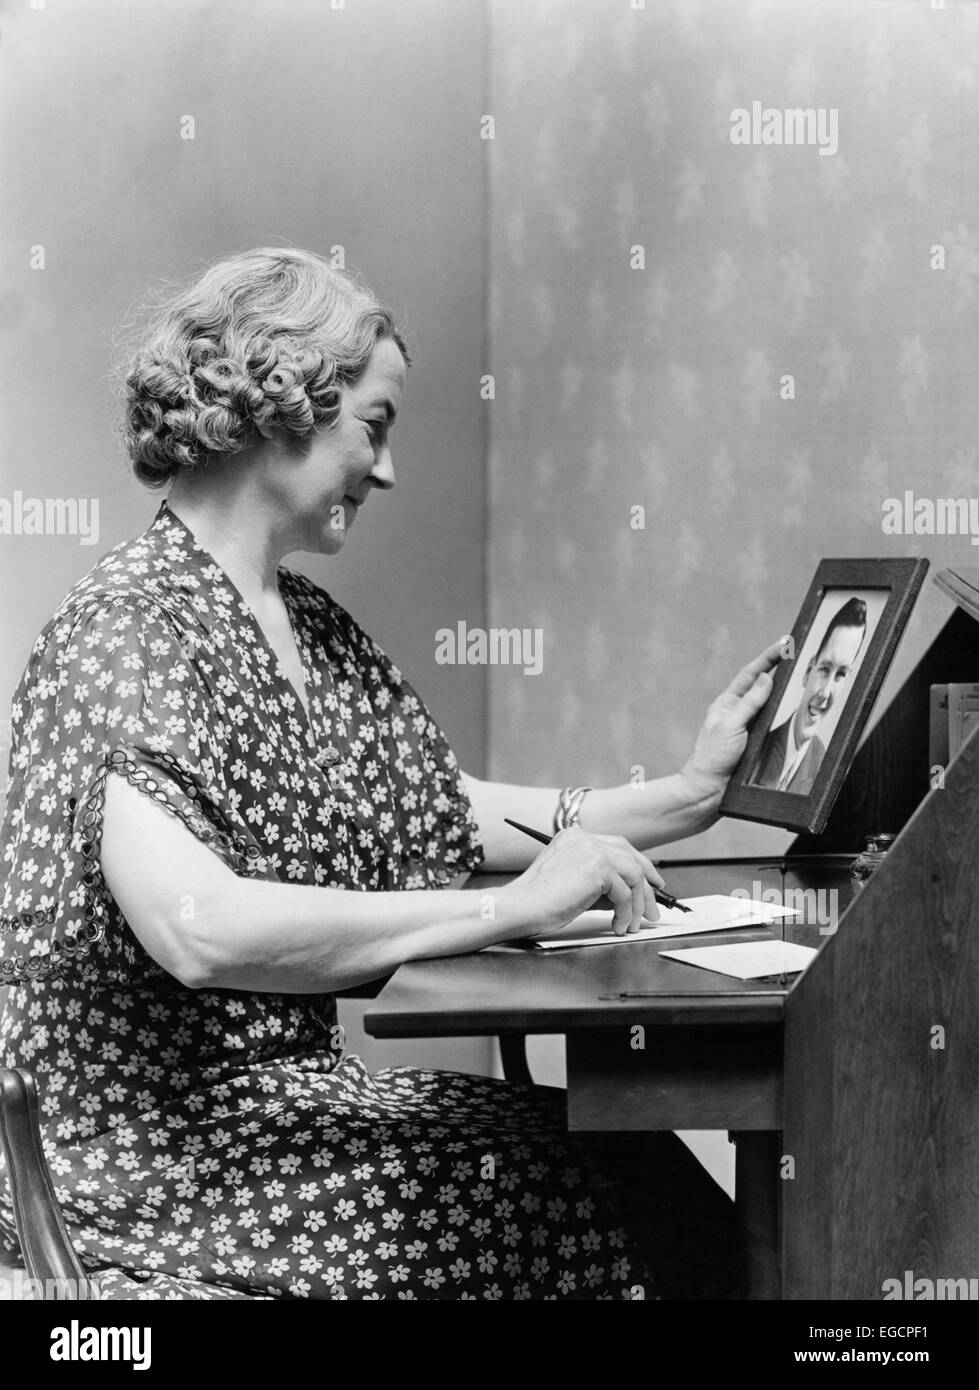 Essay 1940 S Fashion: Housewife 1940s Stock Photos & Housewife 1940s Stock